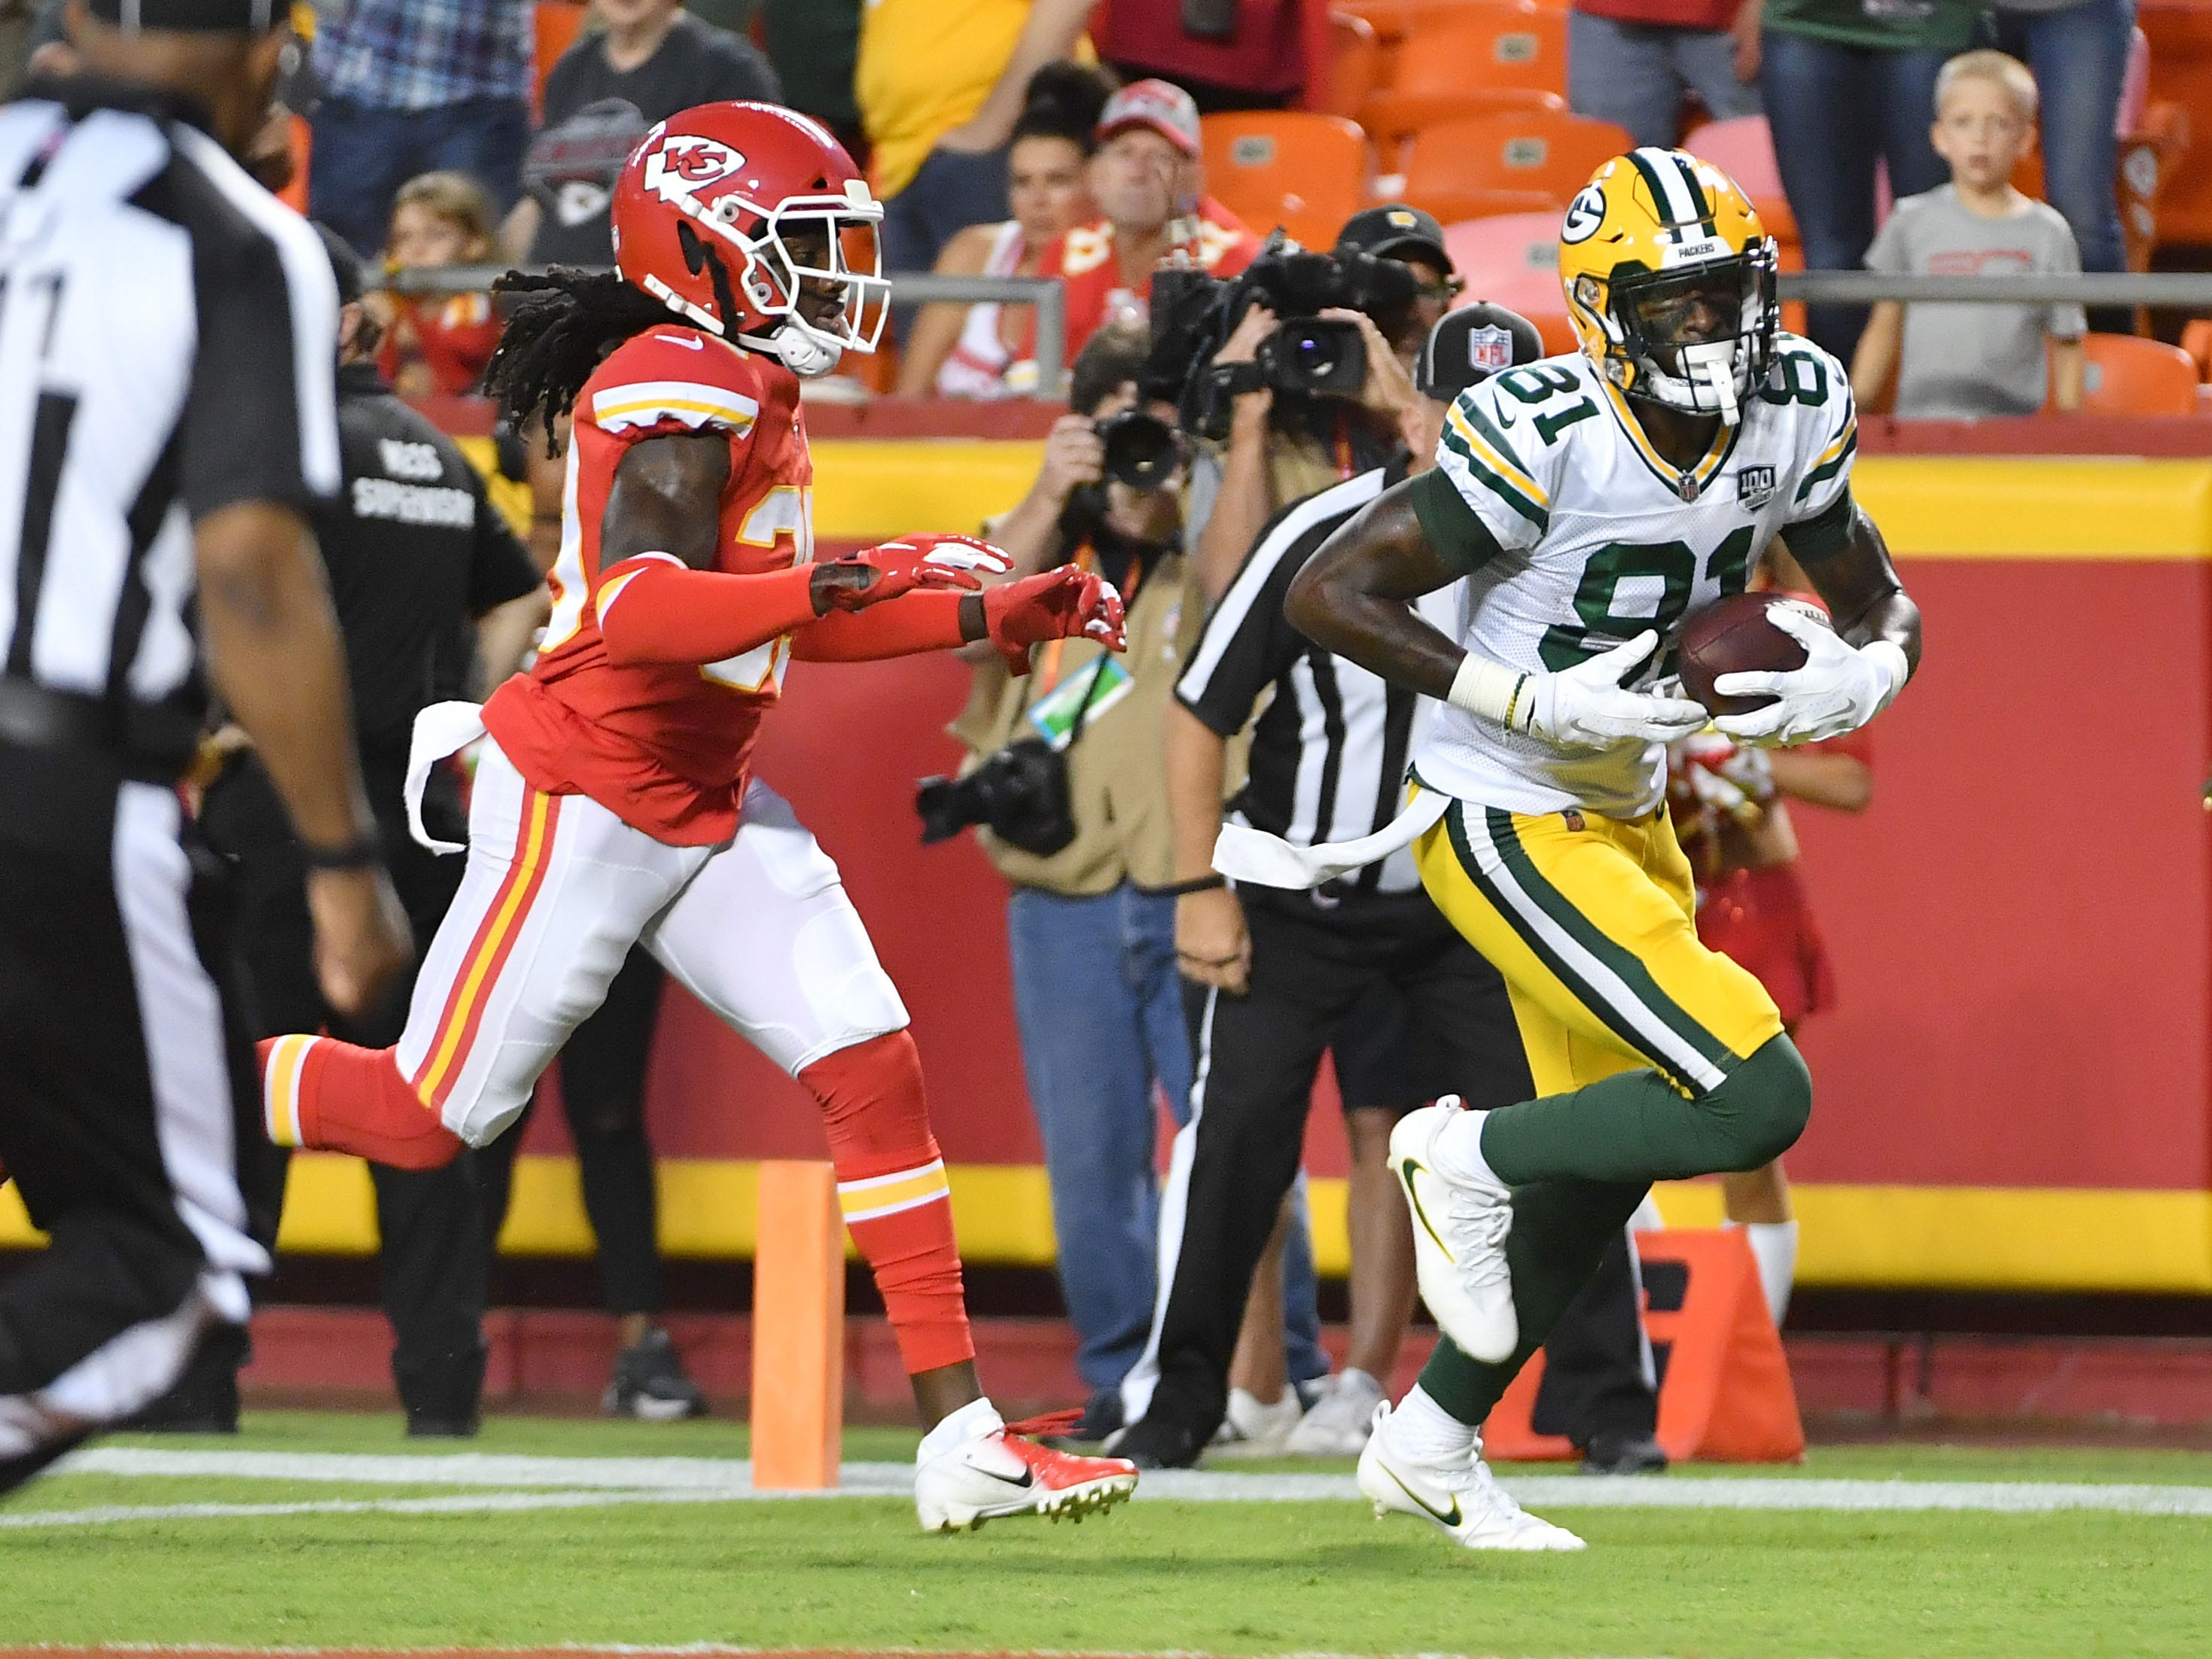 Aug 30, 2018; Kansas City, MO, USA; Green Bay Packers wide receiver Geronimo Allison (81) scores a touchdown as Kansas City Chiefs defensive back Tremon Smith (39) chases during the first half at Arrowhead Stadium.